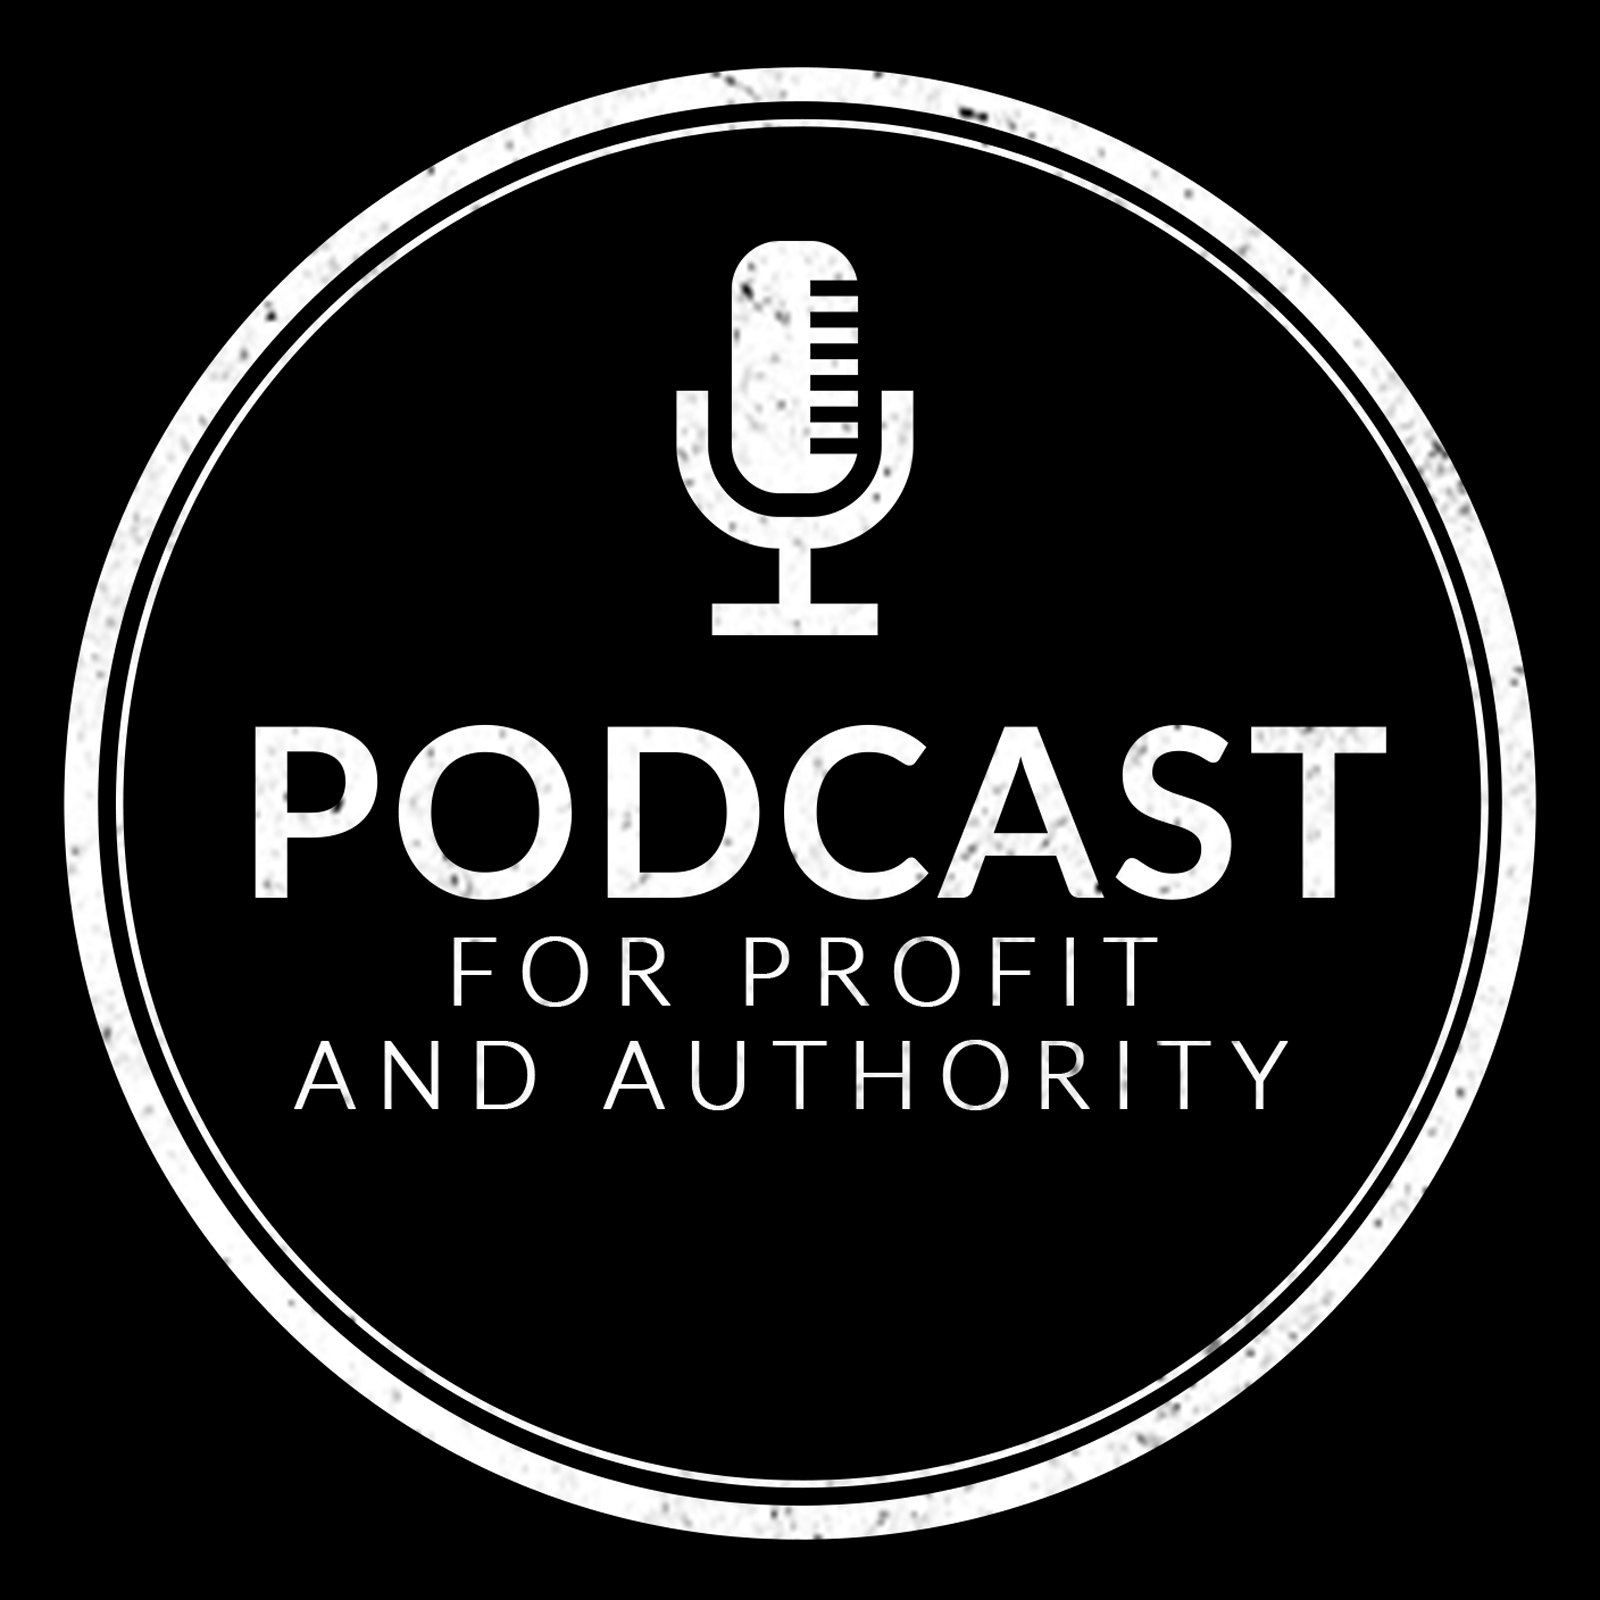 Podcast For Profit And Authority w/ Gene Monterastelli